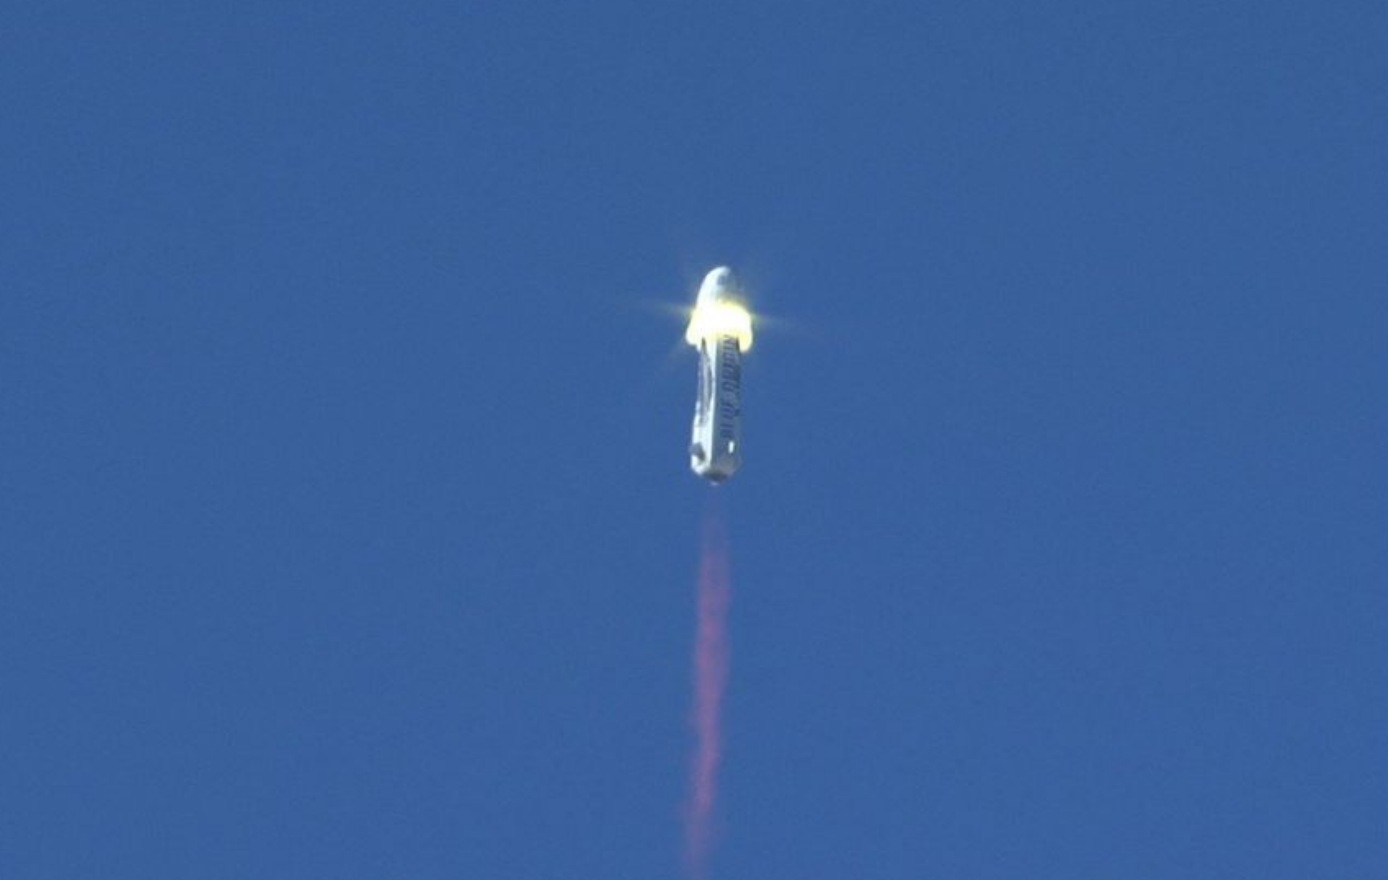 Blue Origin's New Shepard rocket came in for a successful ground landing even following the doubt against it landing successfull after the safety test.